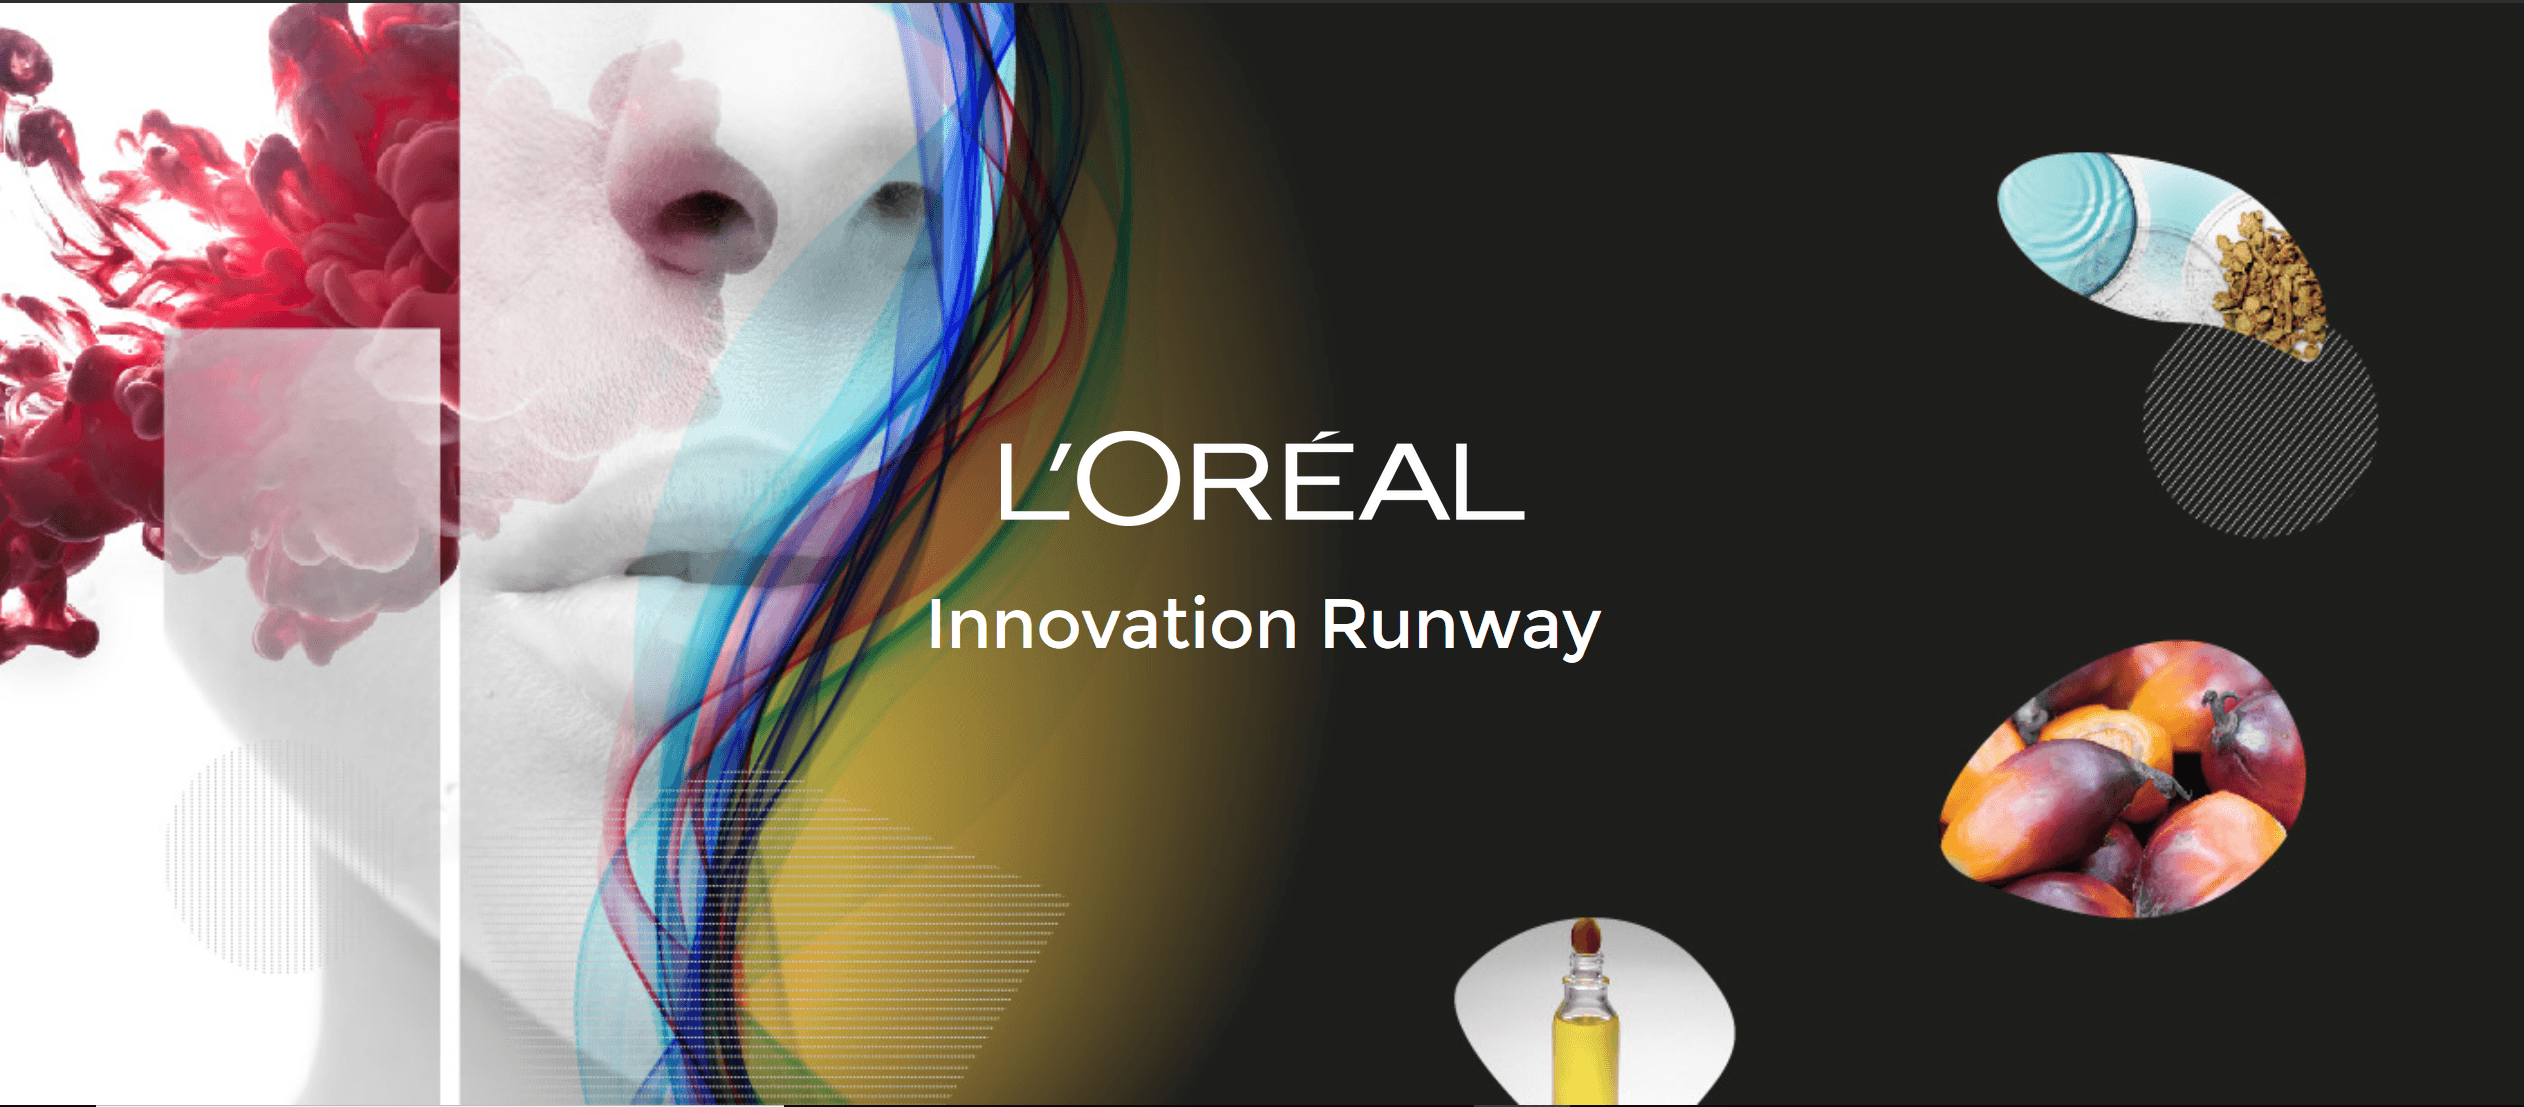 PhytoSpherix Finalist in 2018 L'Oréal Innovation Runway